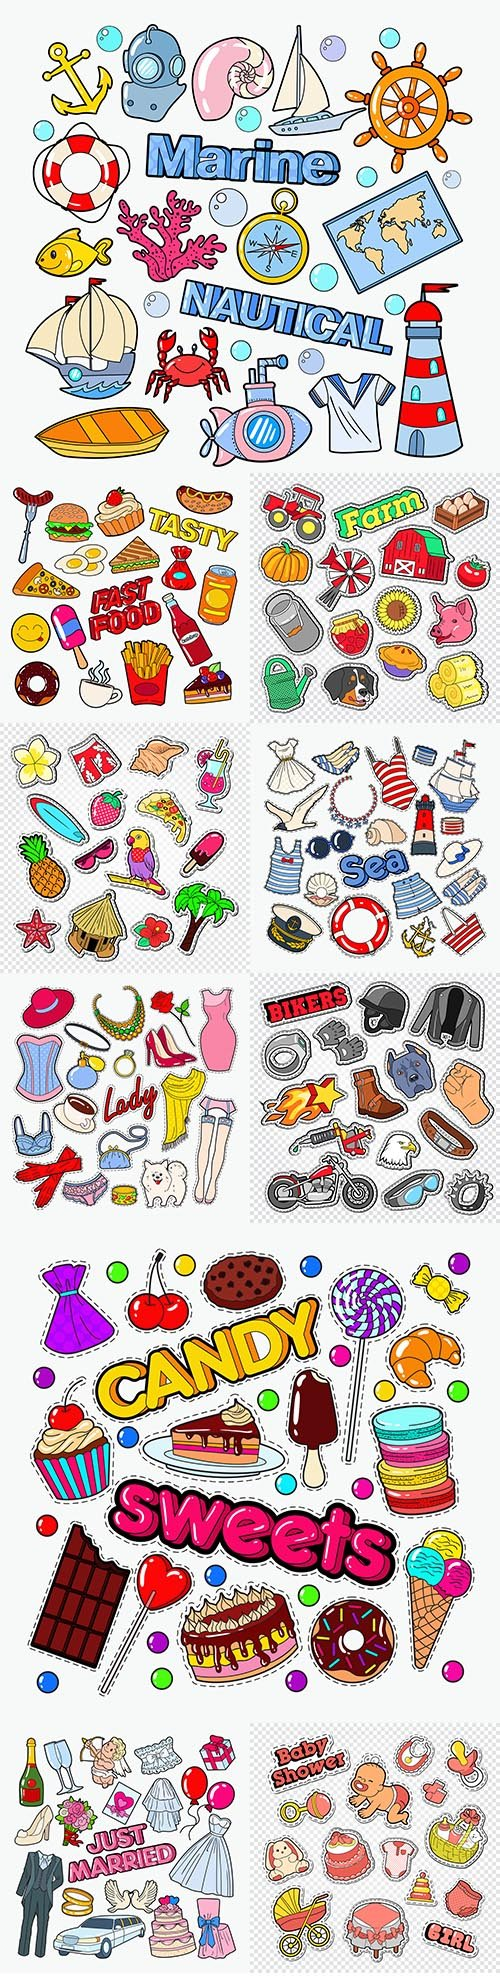 Food and objects drawn cartoon stickers for printing